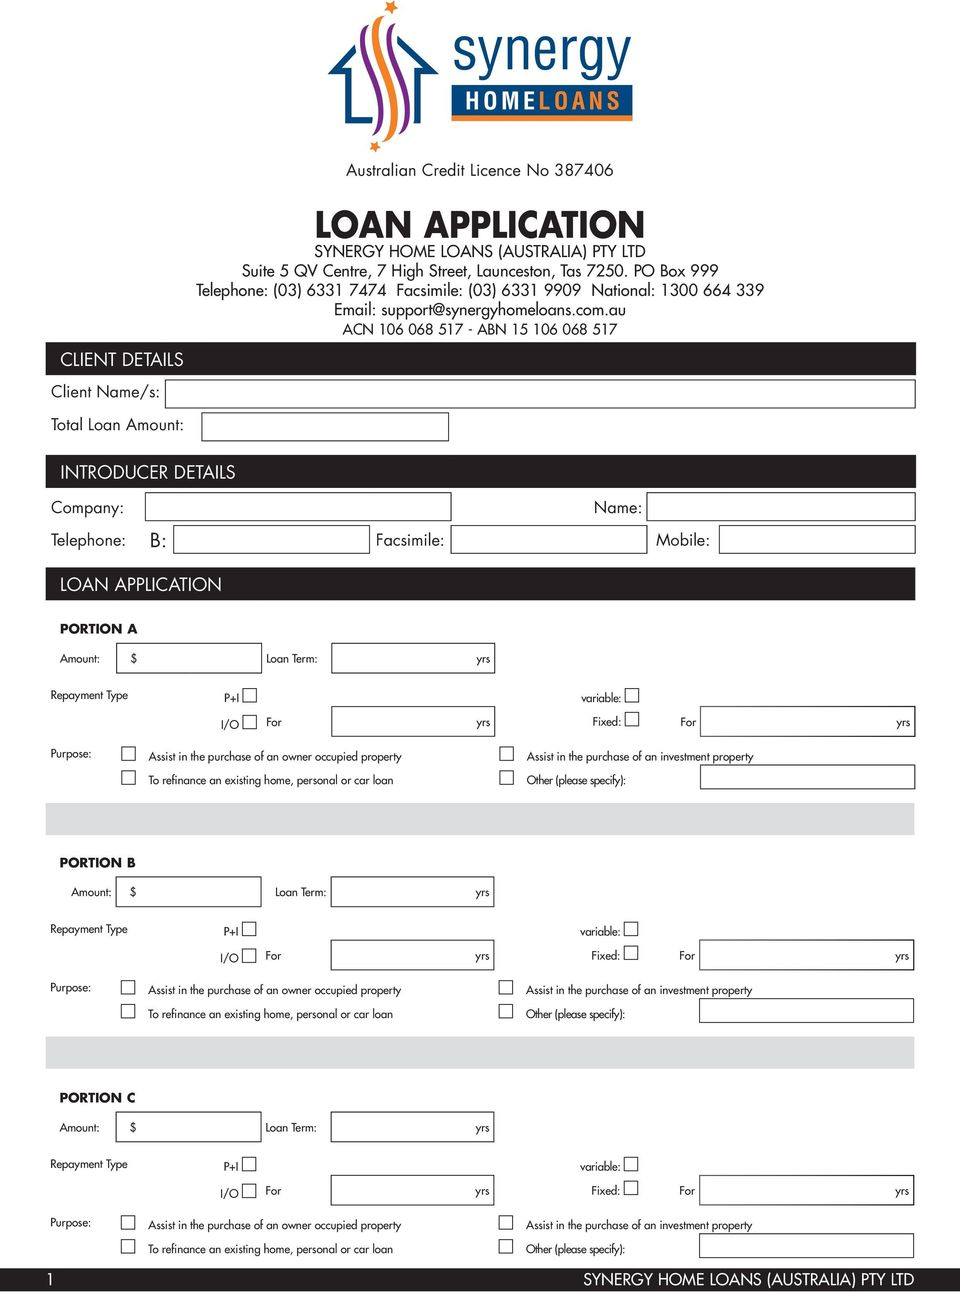 au ACN 106 068 517 - ABN 15 106 068 517 Total Loan Amount: Introducer Details Company: Name: Telephone: B: Facsimile: Mobile: Loan Application Portion a Amount: Loan Term: yrs Repayment Type P+I